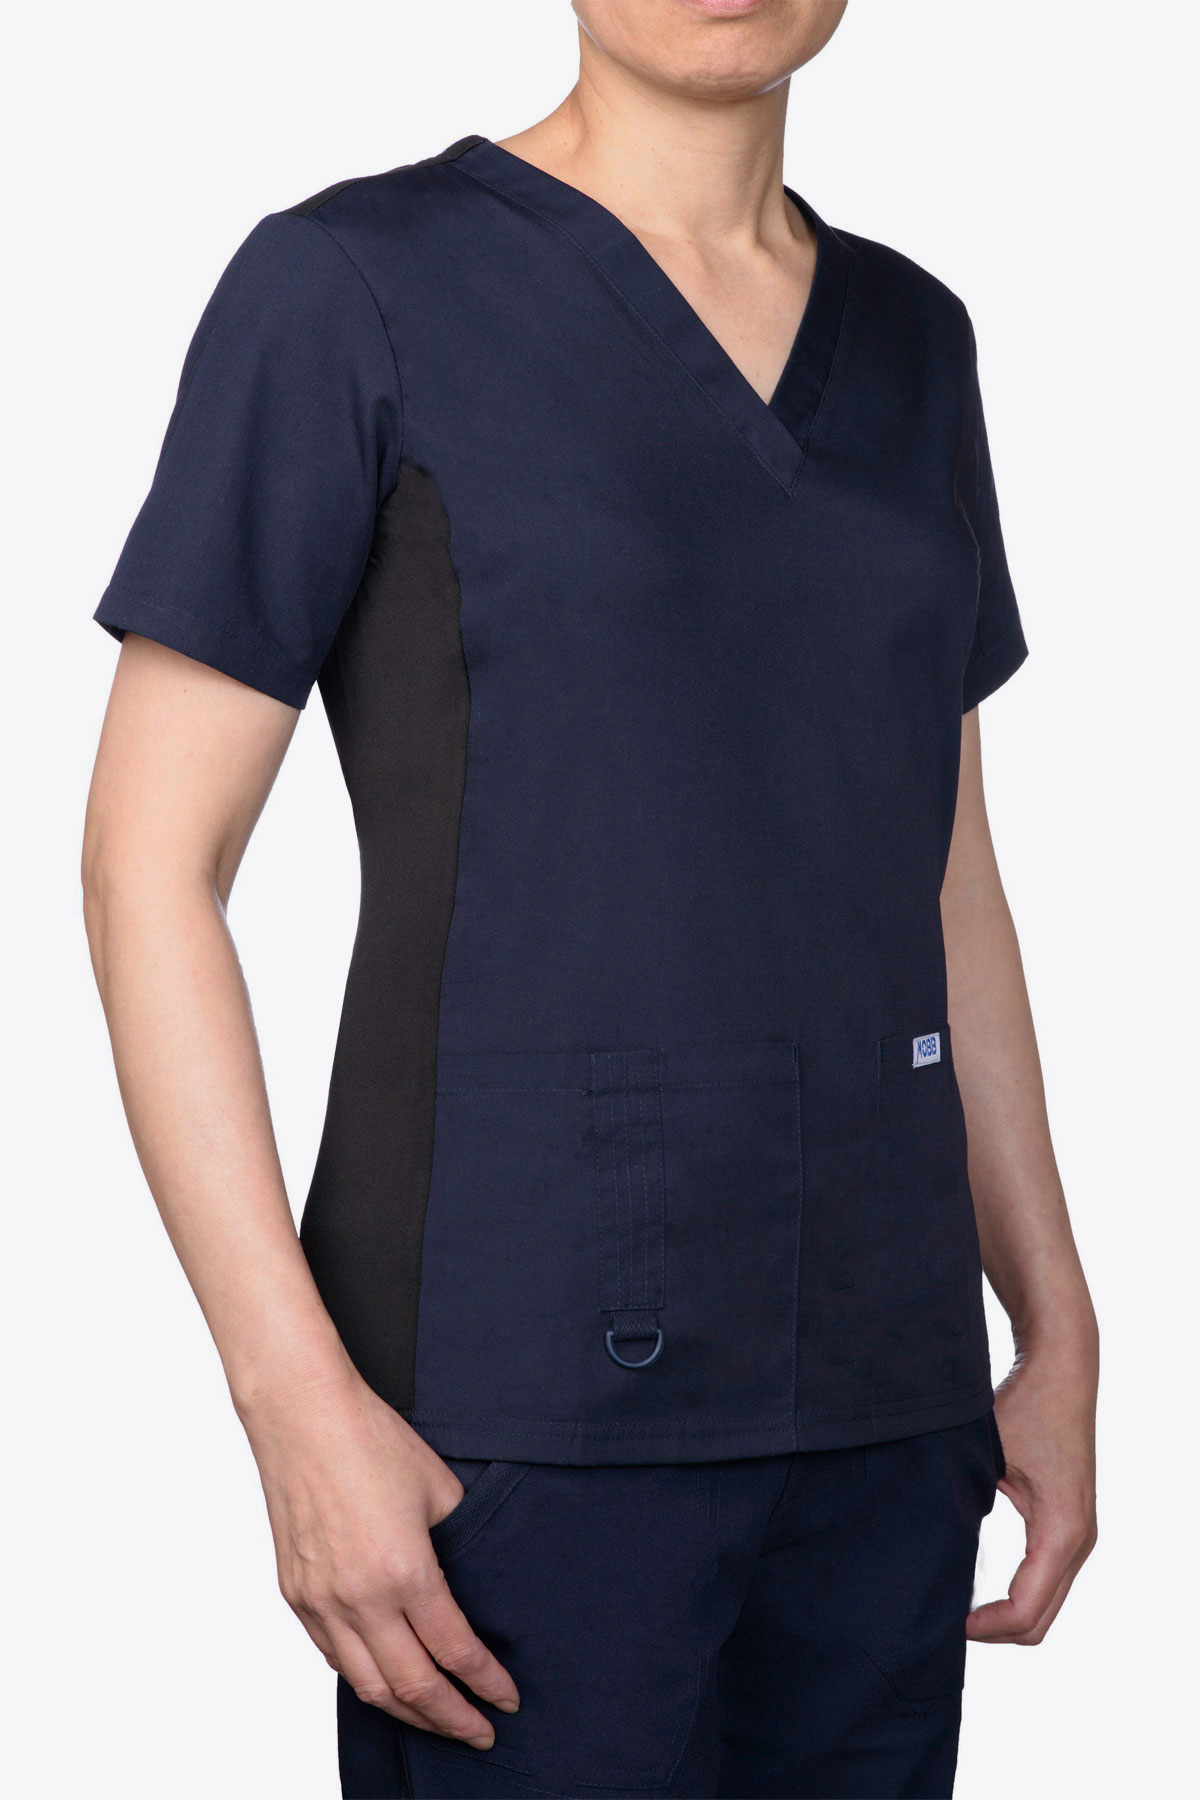 Stretch Back V Neck Scrub Top - 624T